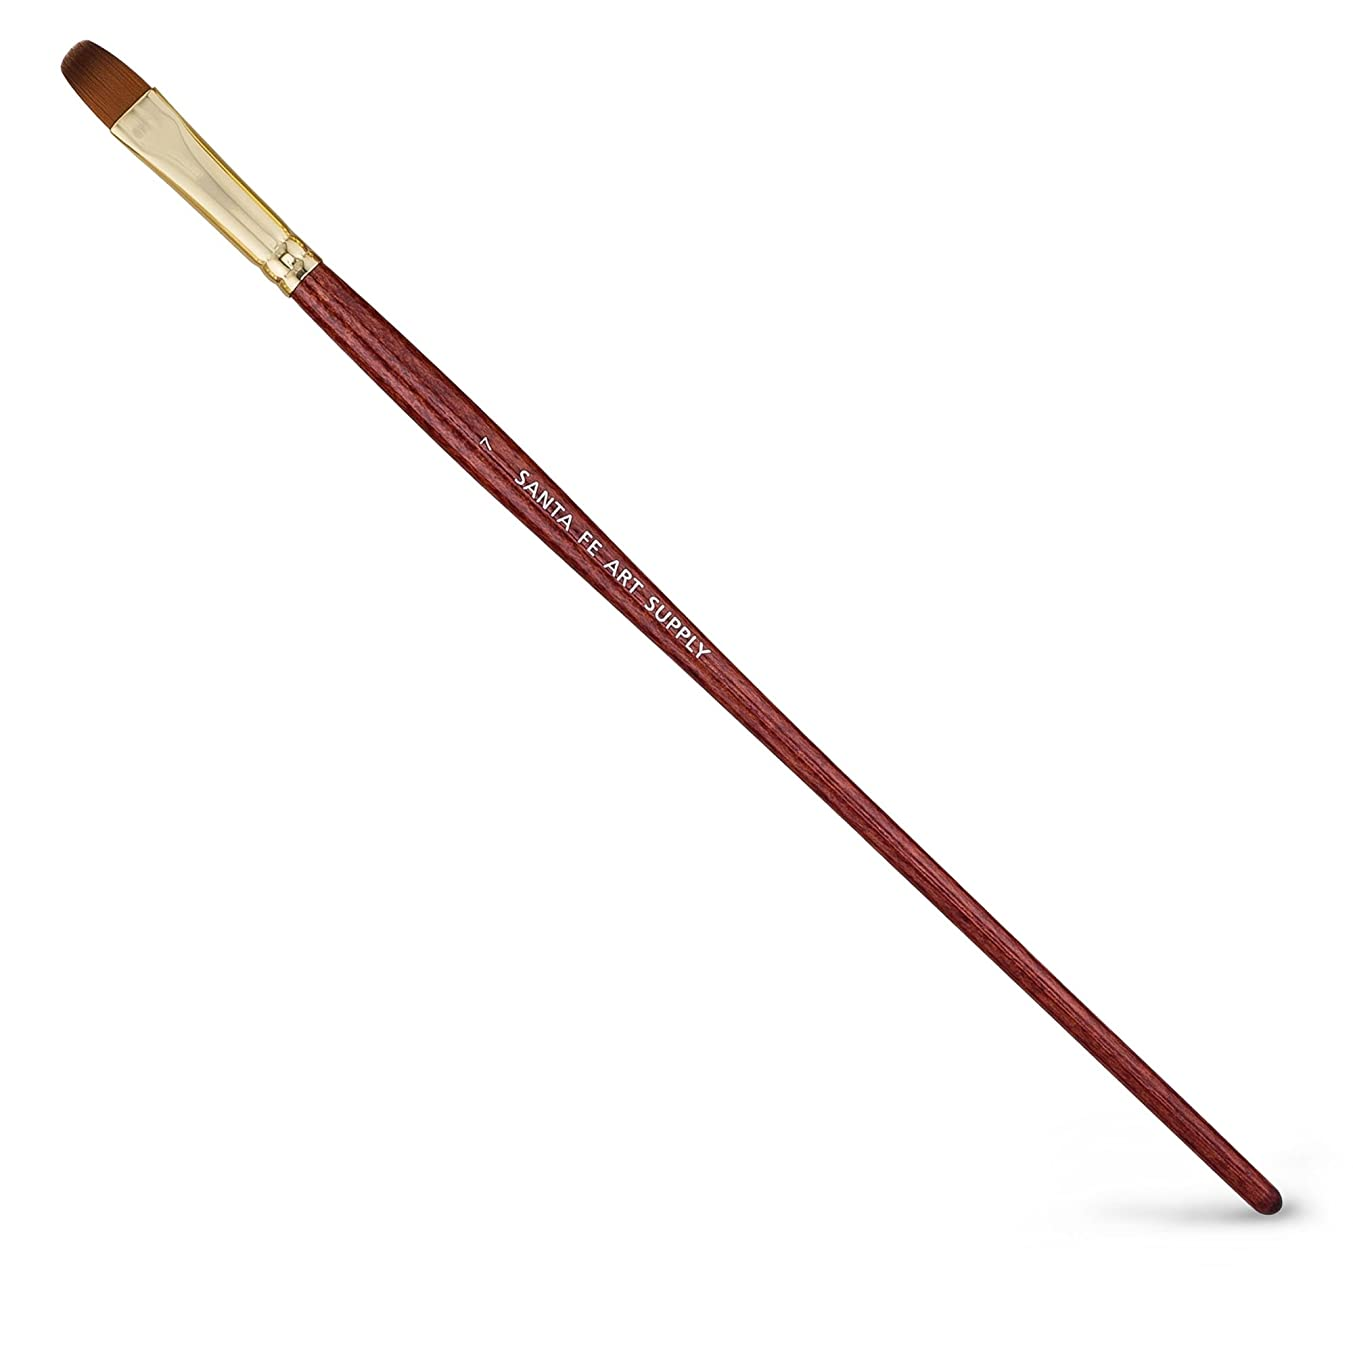 Santa Fe Art Supply Best Quality Artist Paintbrush Filbert Size 7. Acrylic Oil Watercolor & Face Paint. Long Handle Replacement Paint Brushes with